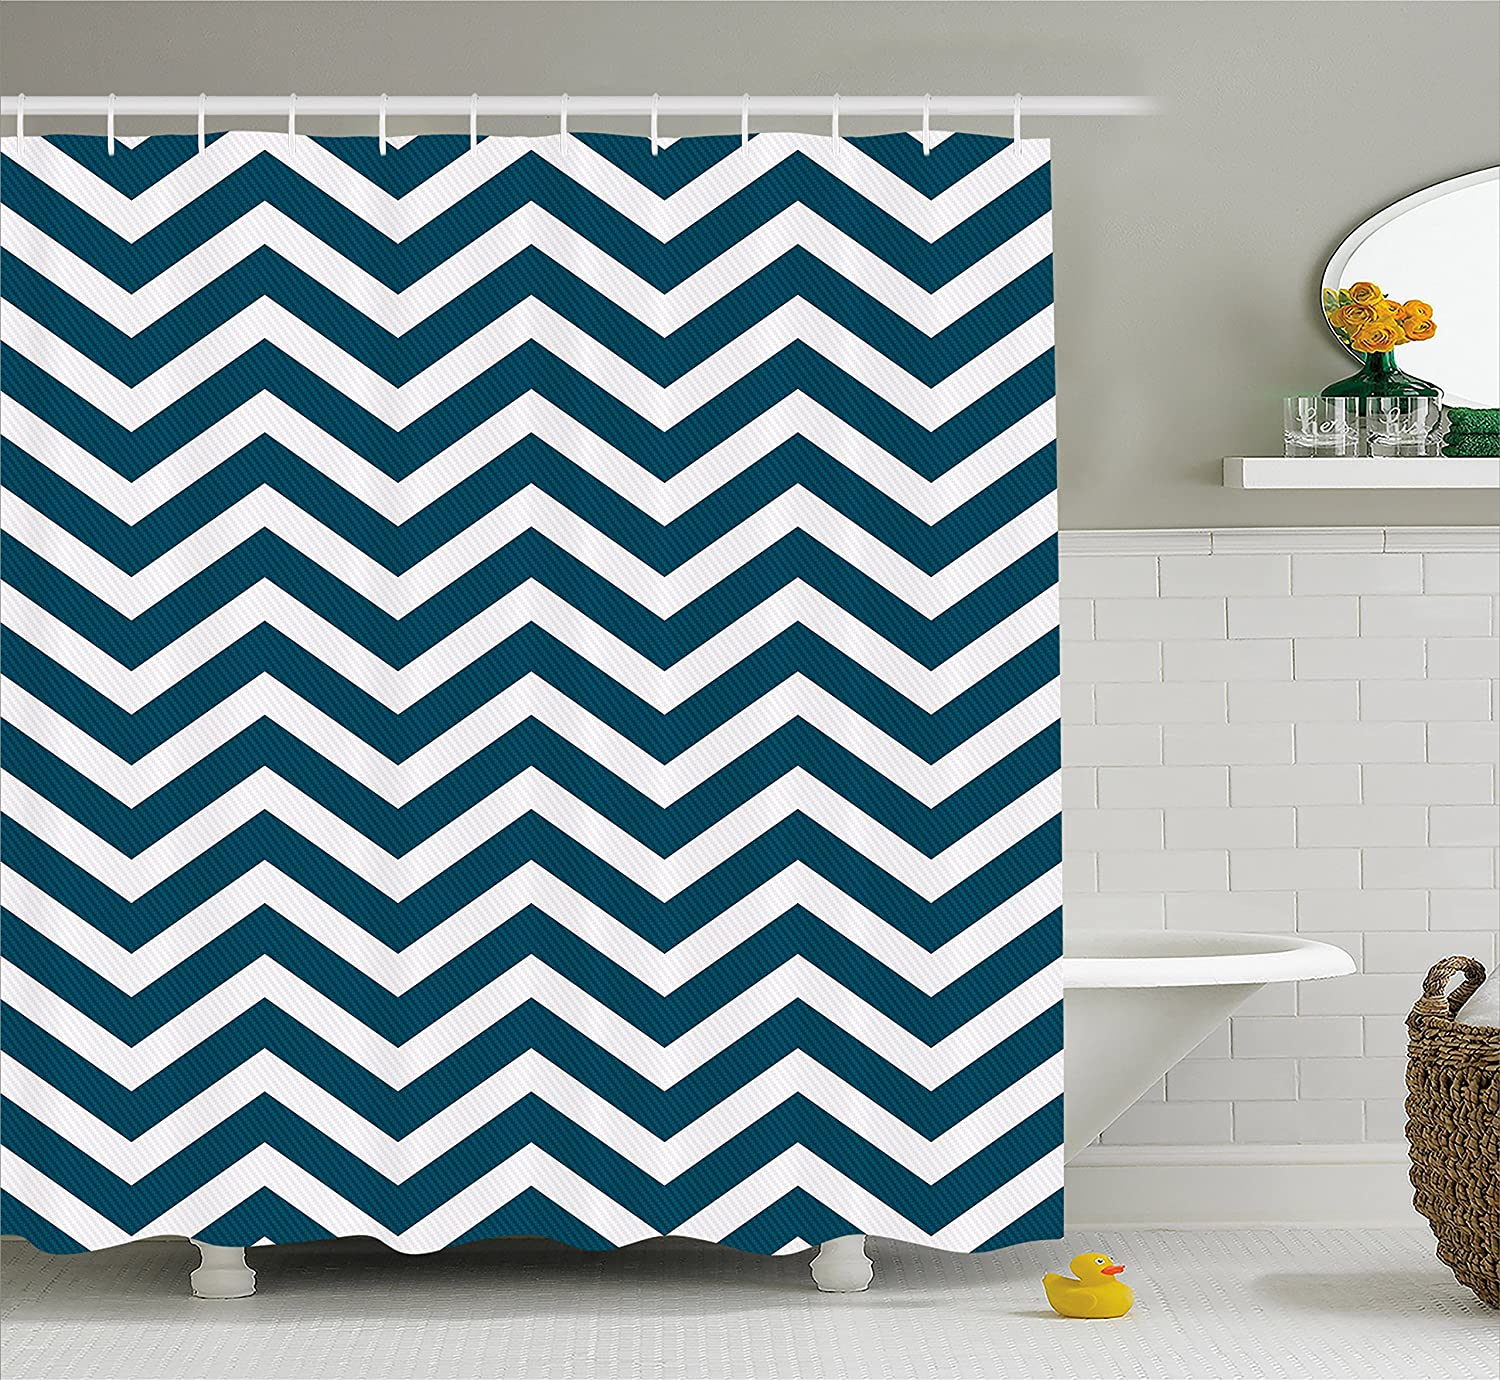 Ambesonne Navy Shower Curtain Zigzag Chevron Geometrical Design Lines Sea Waves Inspired Decor Art Print Fabric Bathroom Set With Hooks 70 Inches